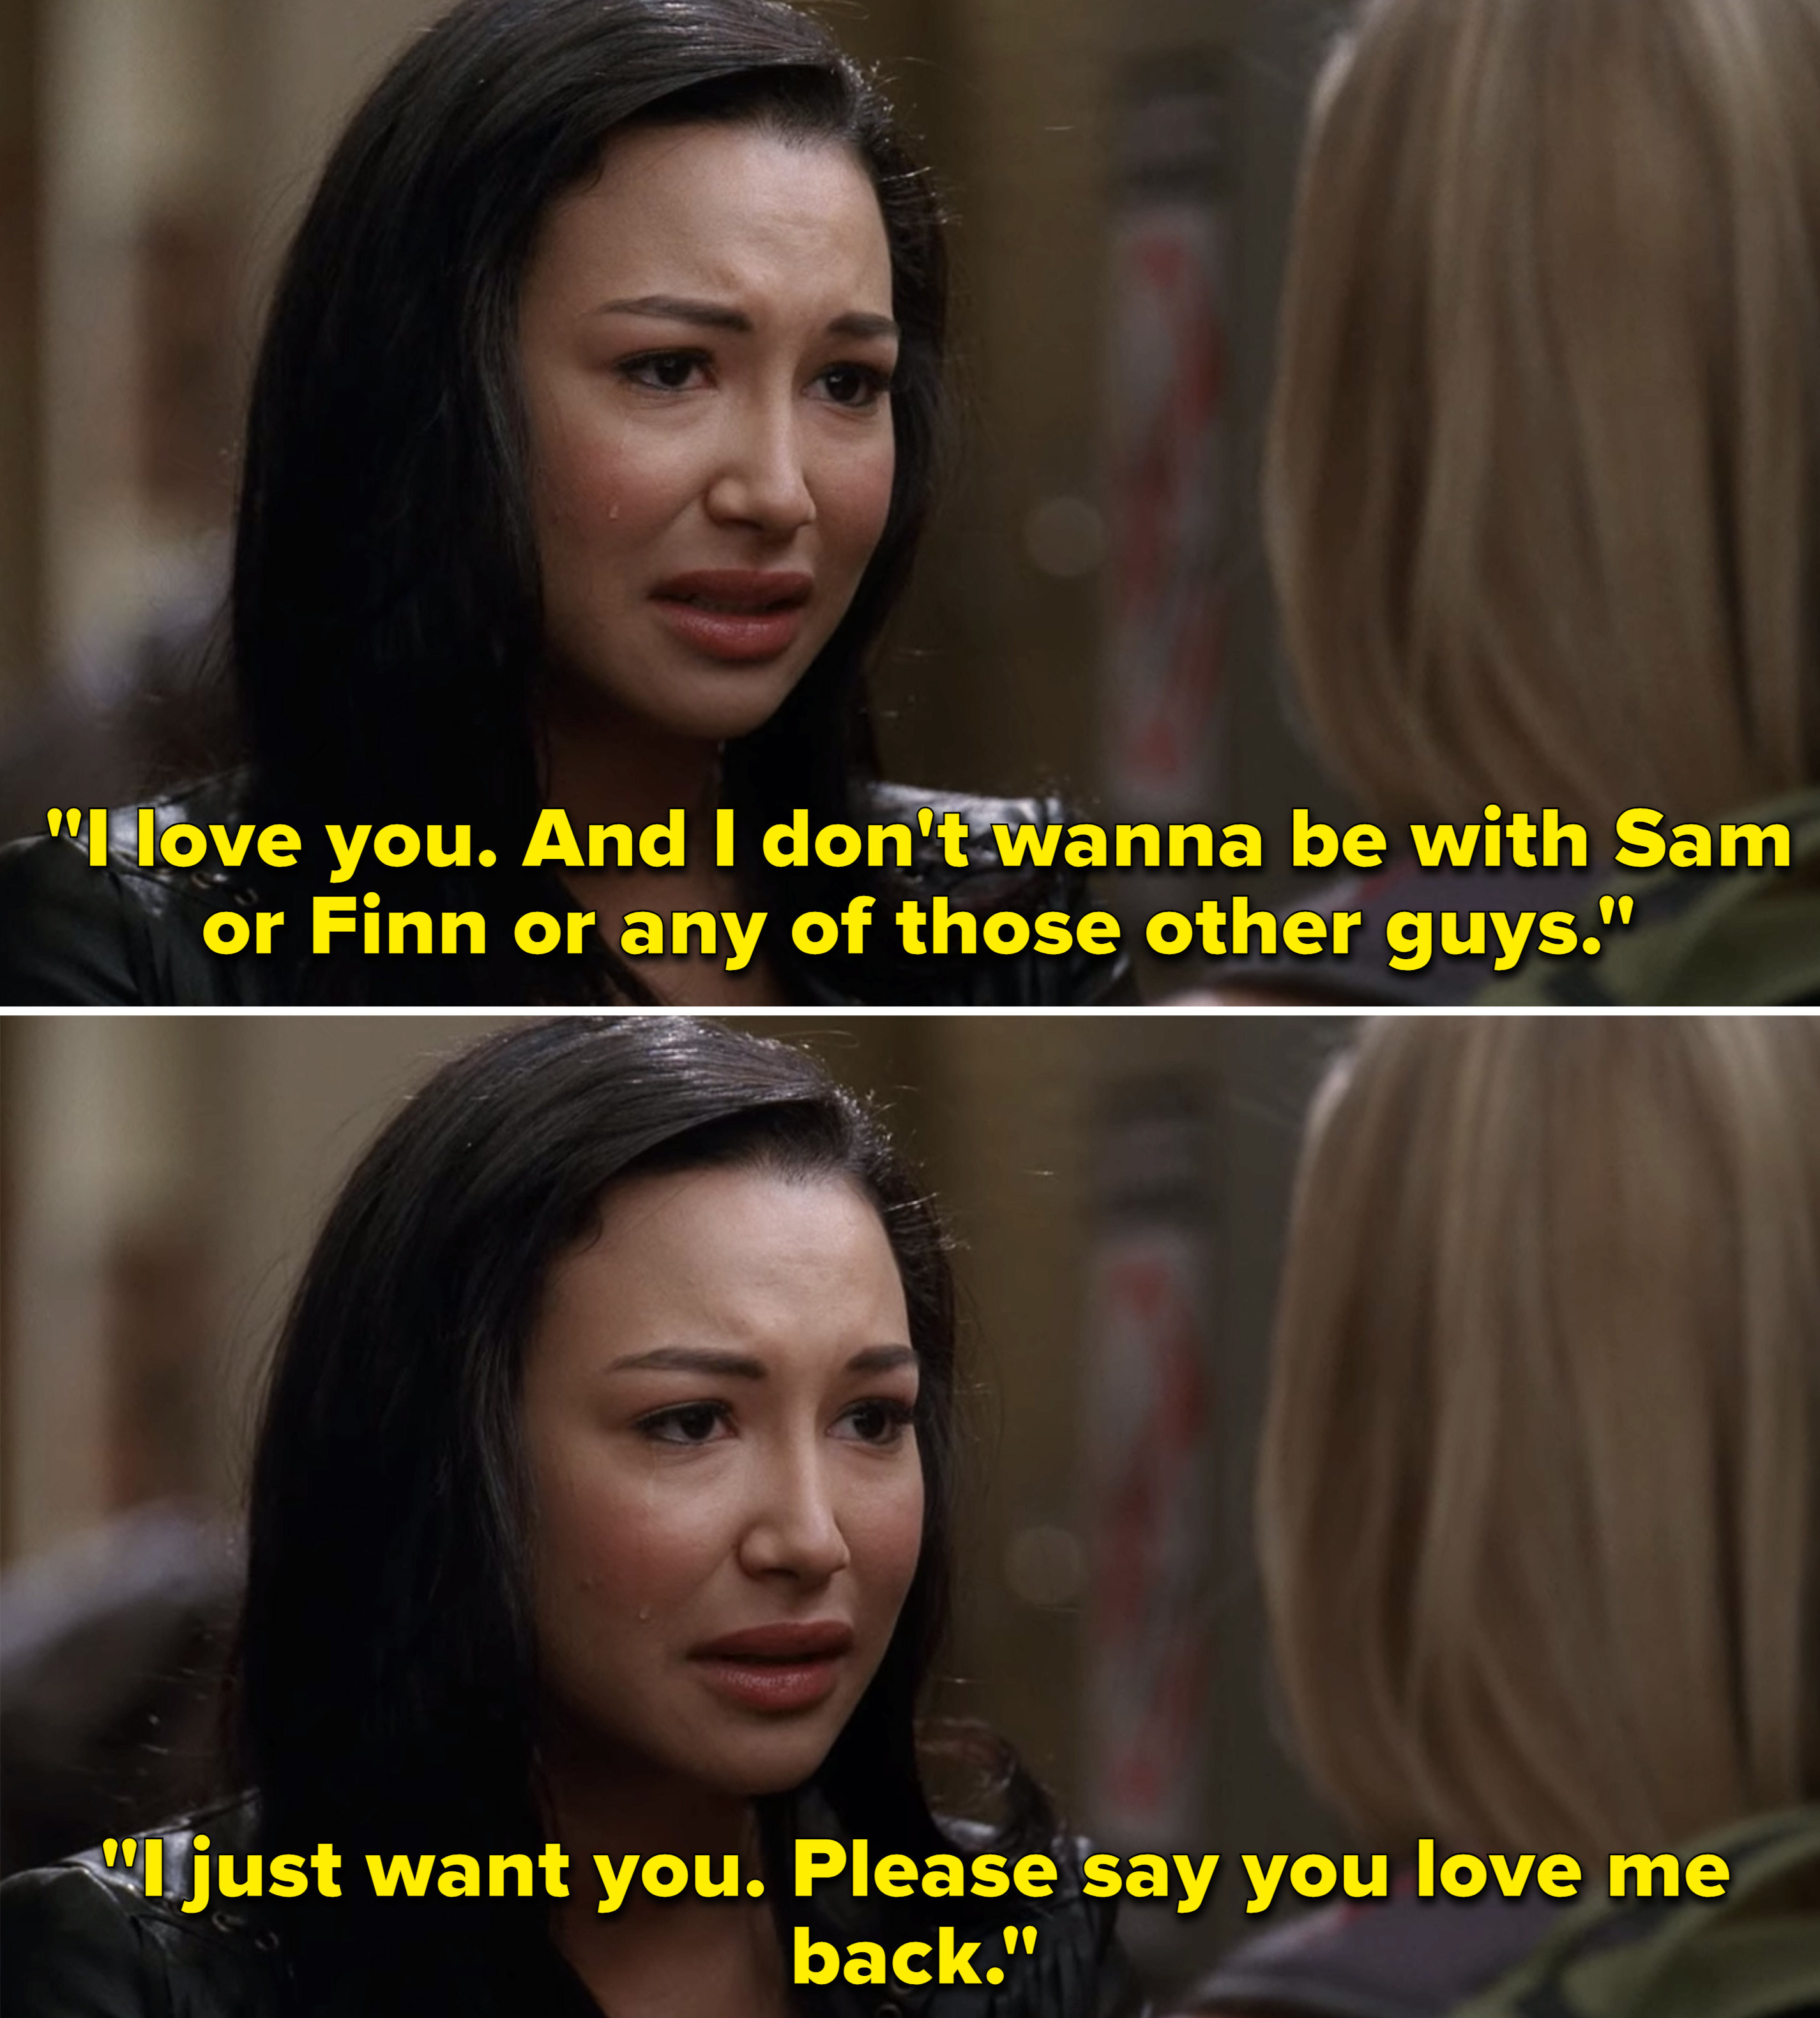 """Santana saying that she doesn't want to be with """"Sam or Finn or any of those other guys. I just want you. Please say you love me back"""""""